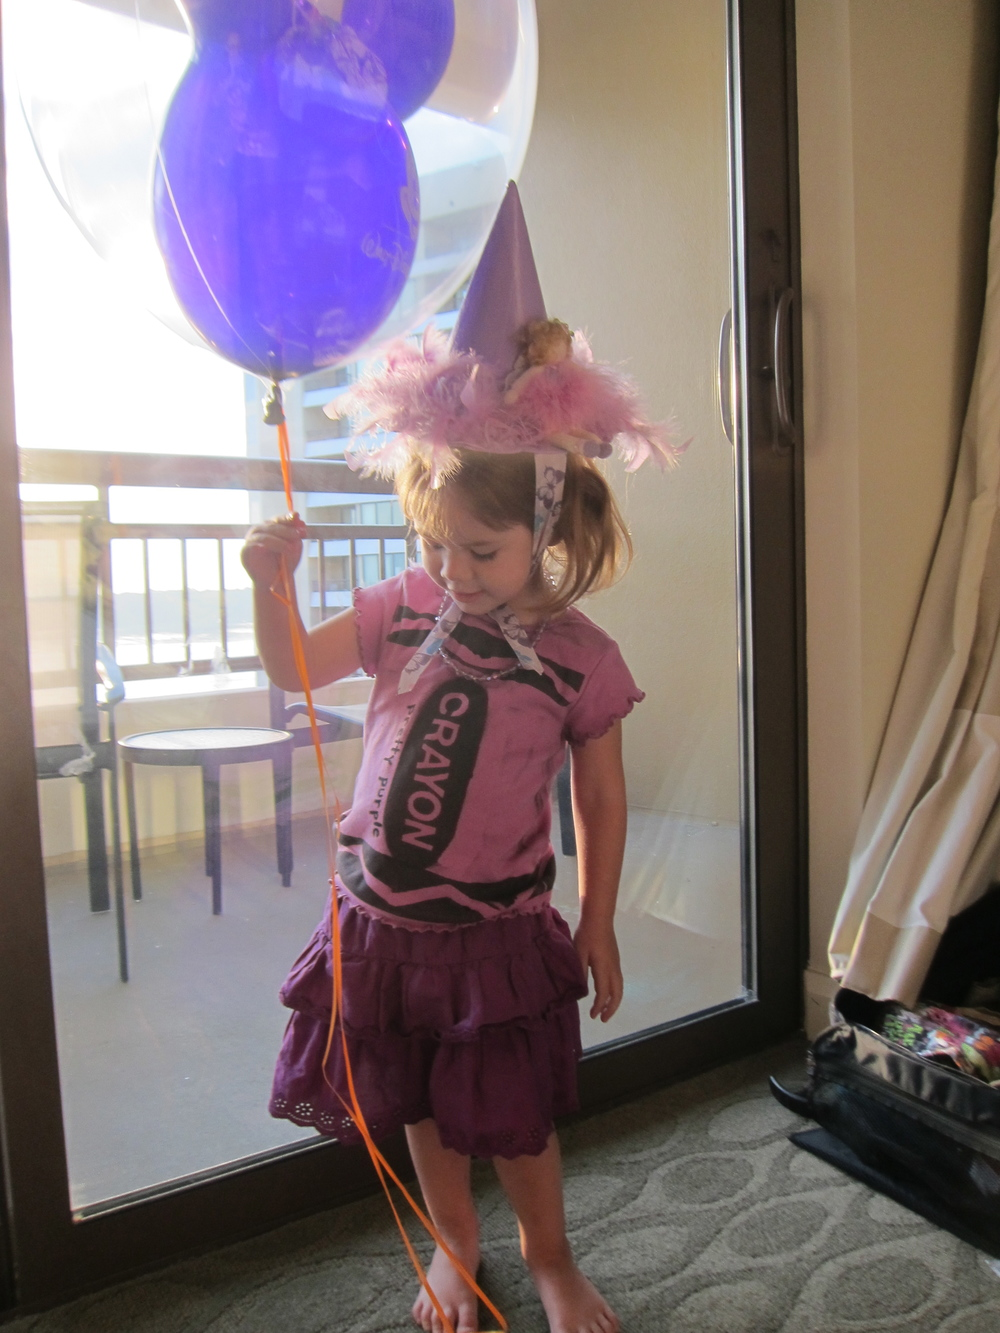 Eva picked a purple balloon, but we had to wait until the morning to photograph it!